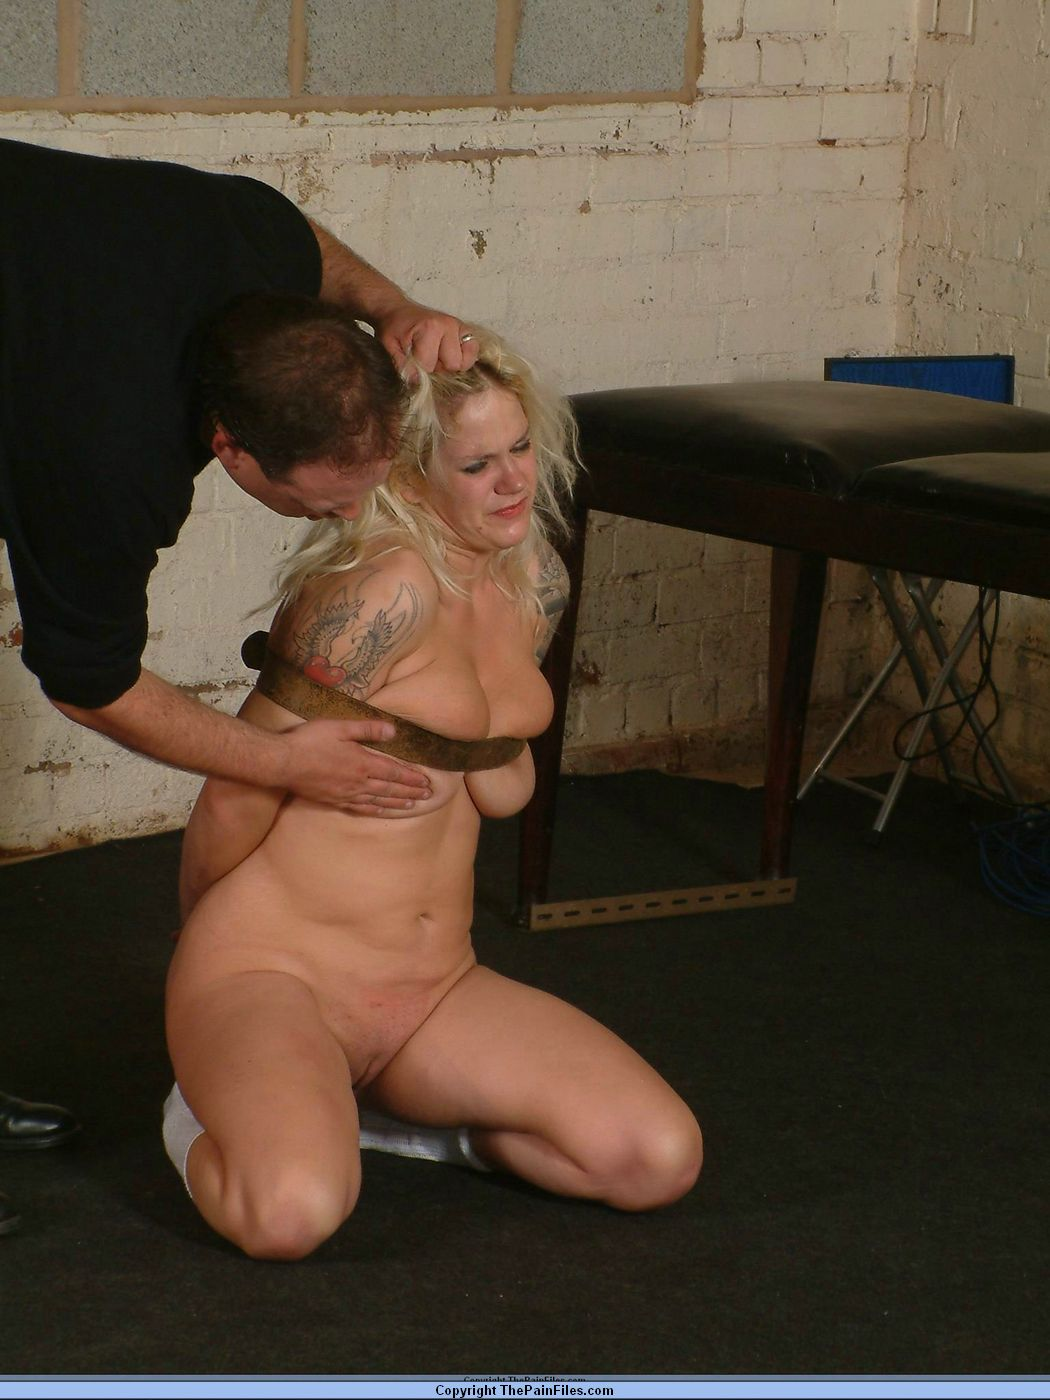 spank and punishment stories trade